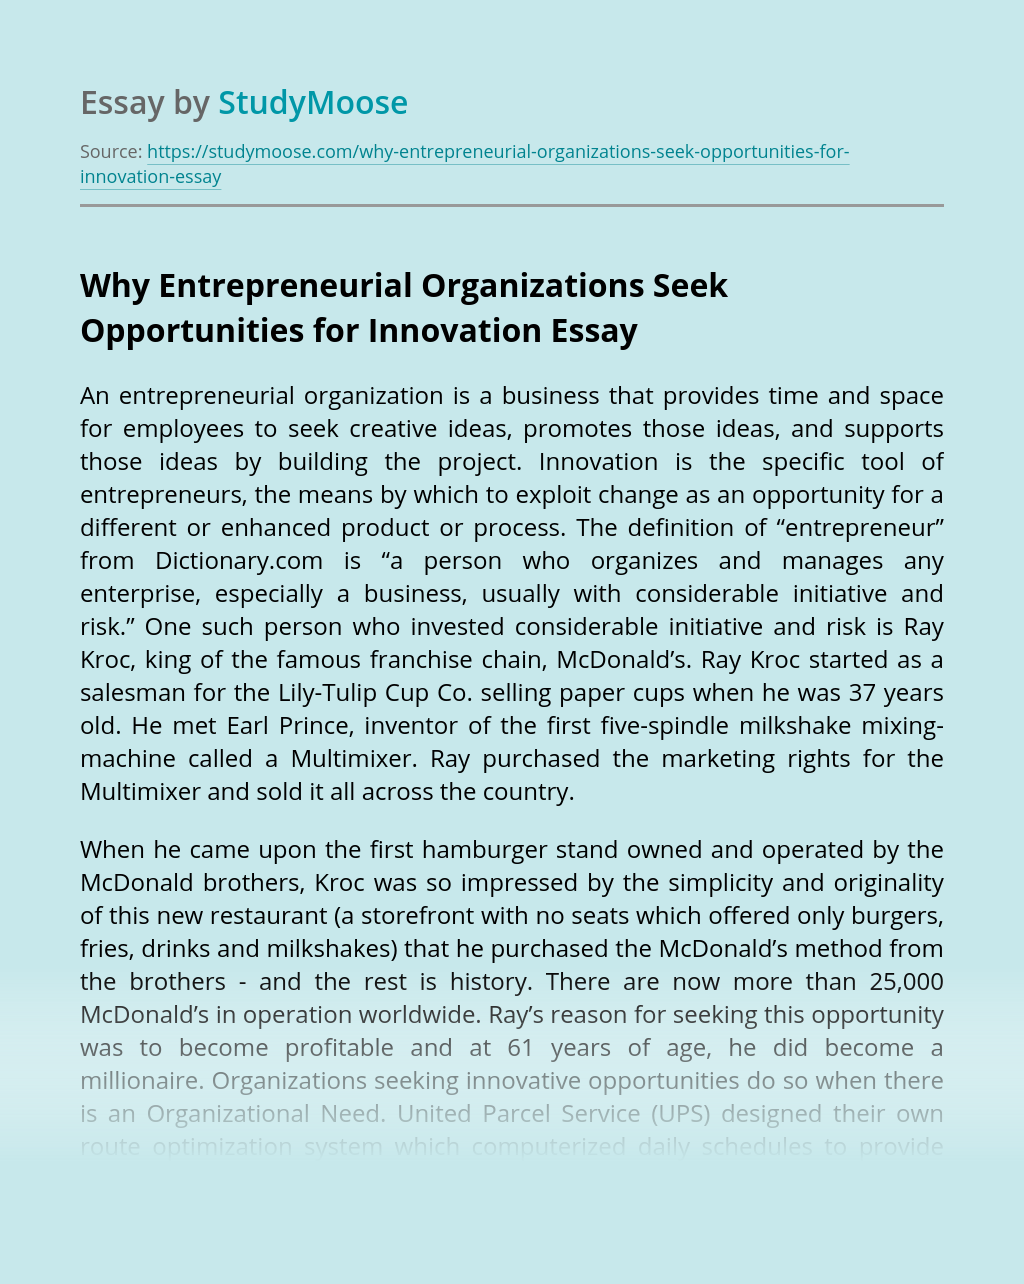 Why Entrepreneurial Organizations Seek Opportunities for Innovation